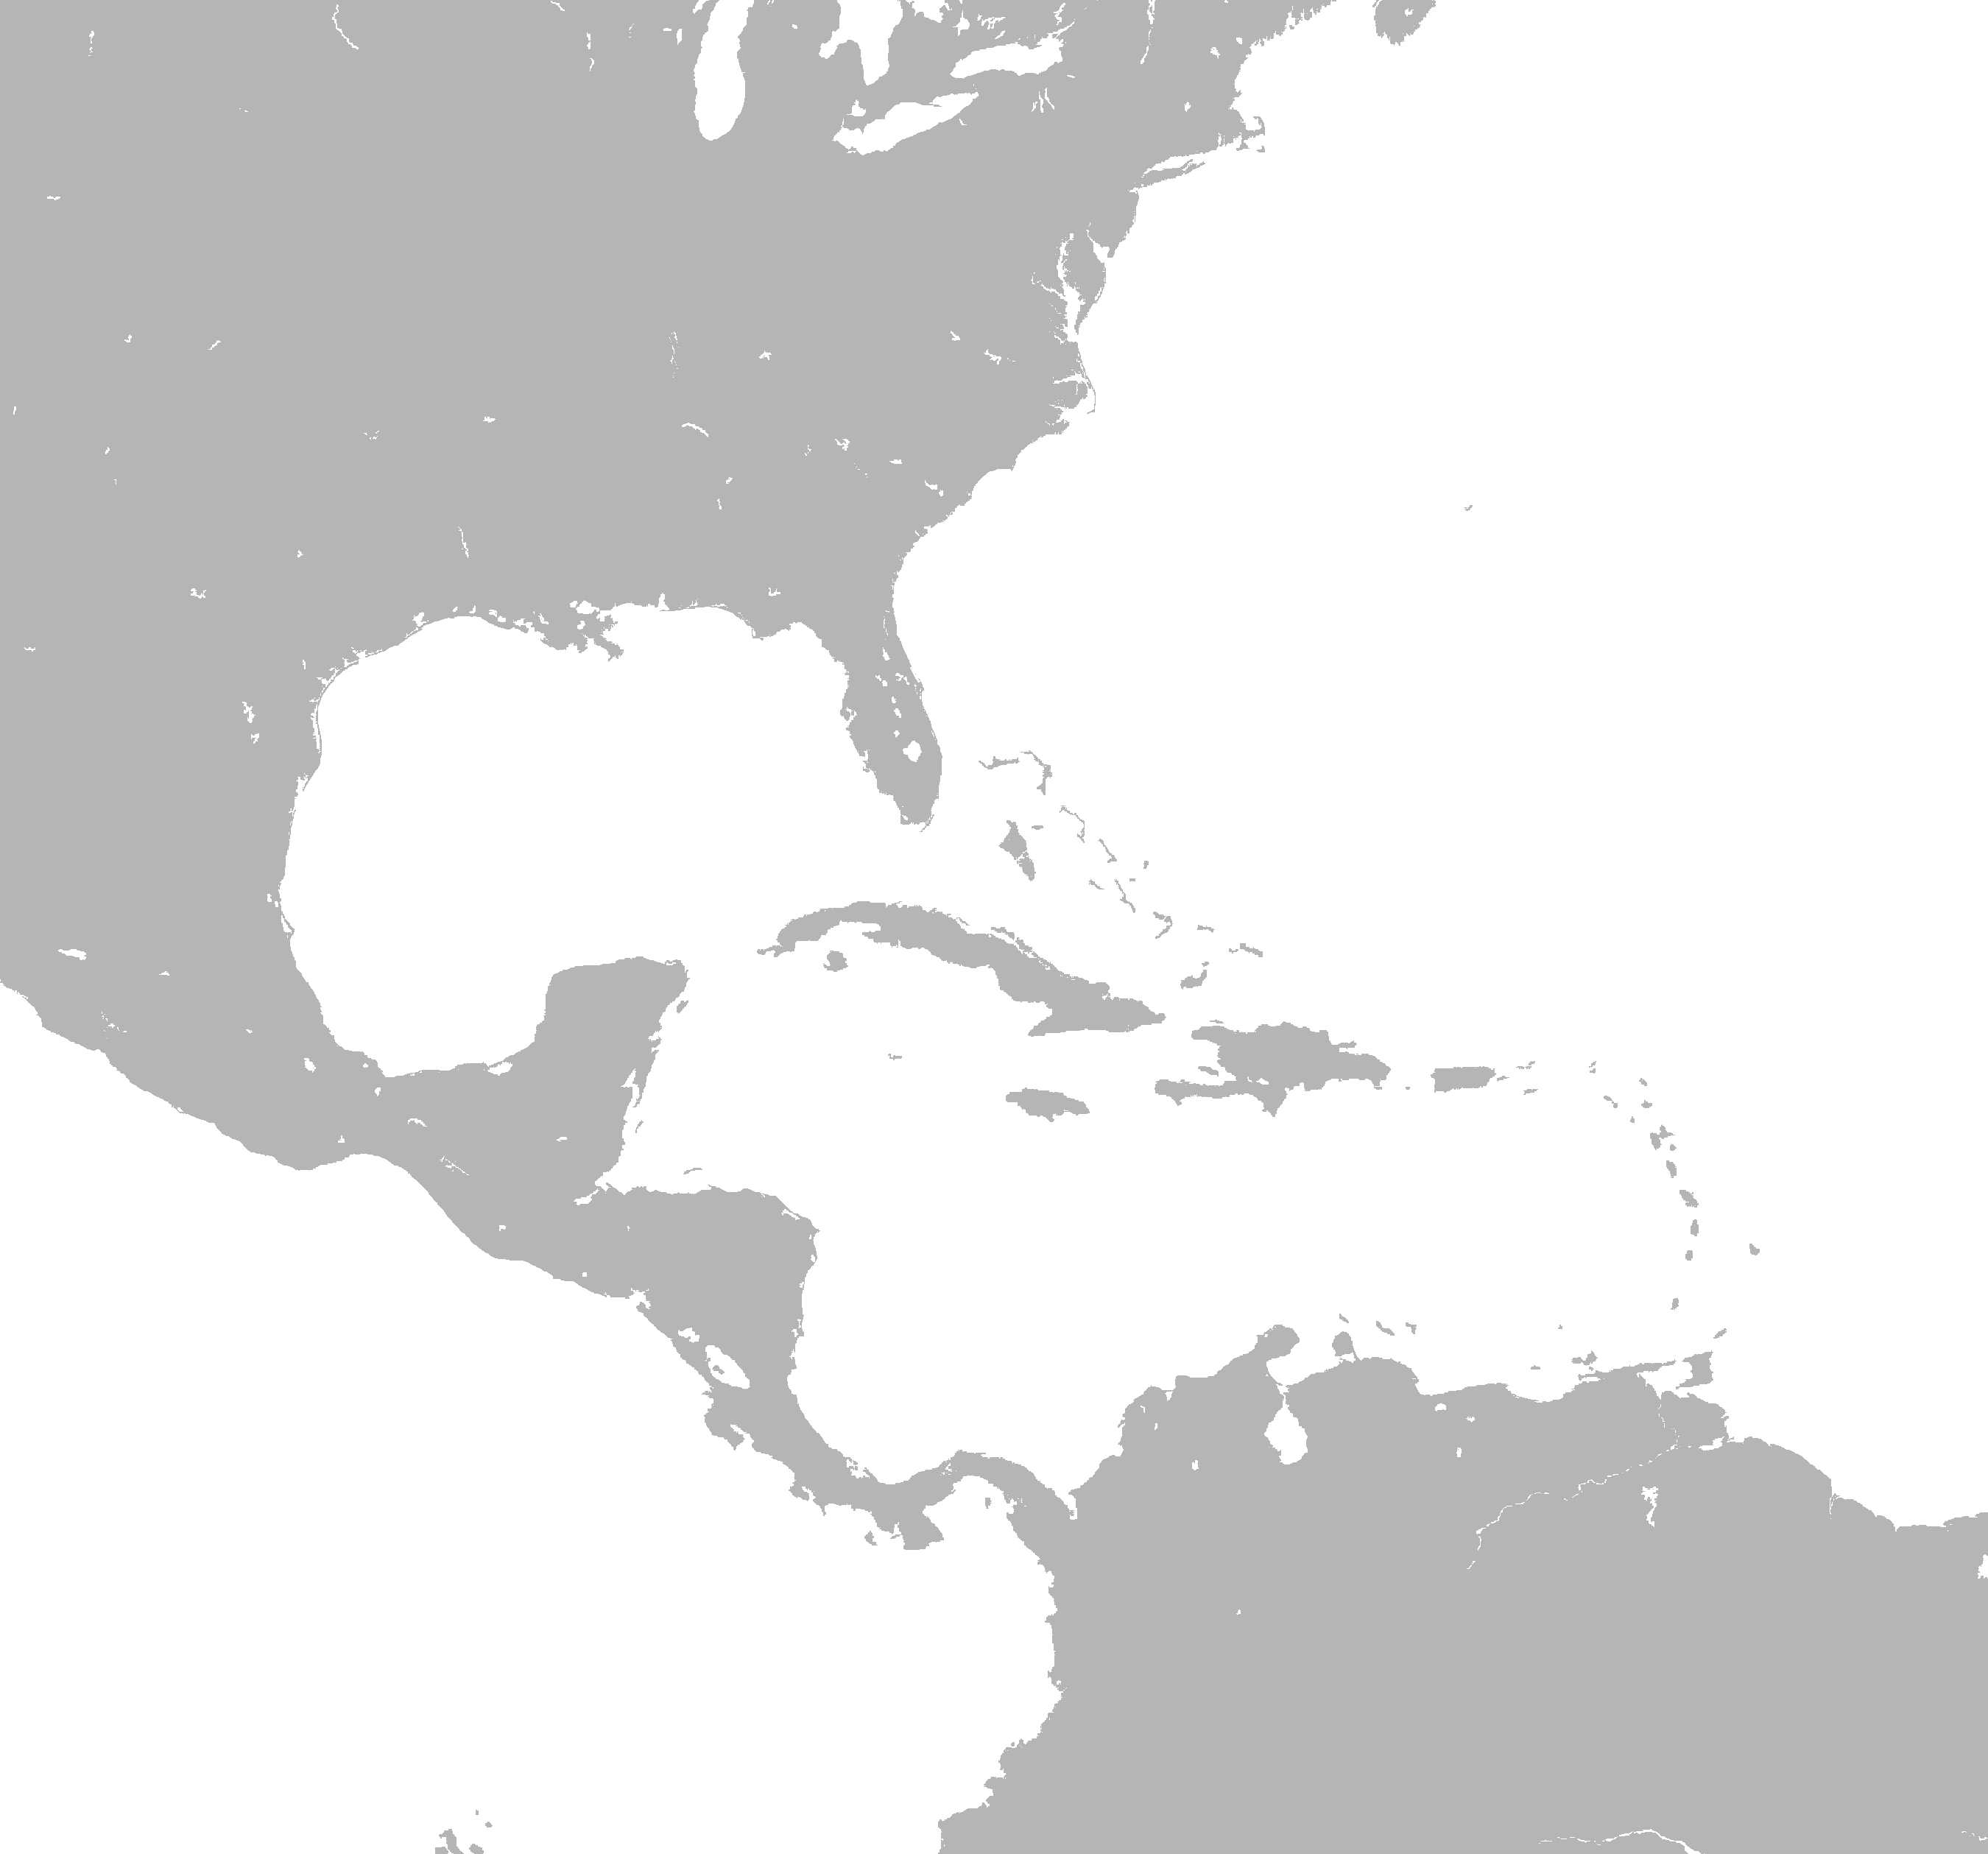 FileCaribbean Map Blankpng Wikipedia - Blank map of the united states wikipedia